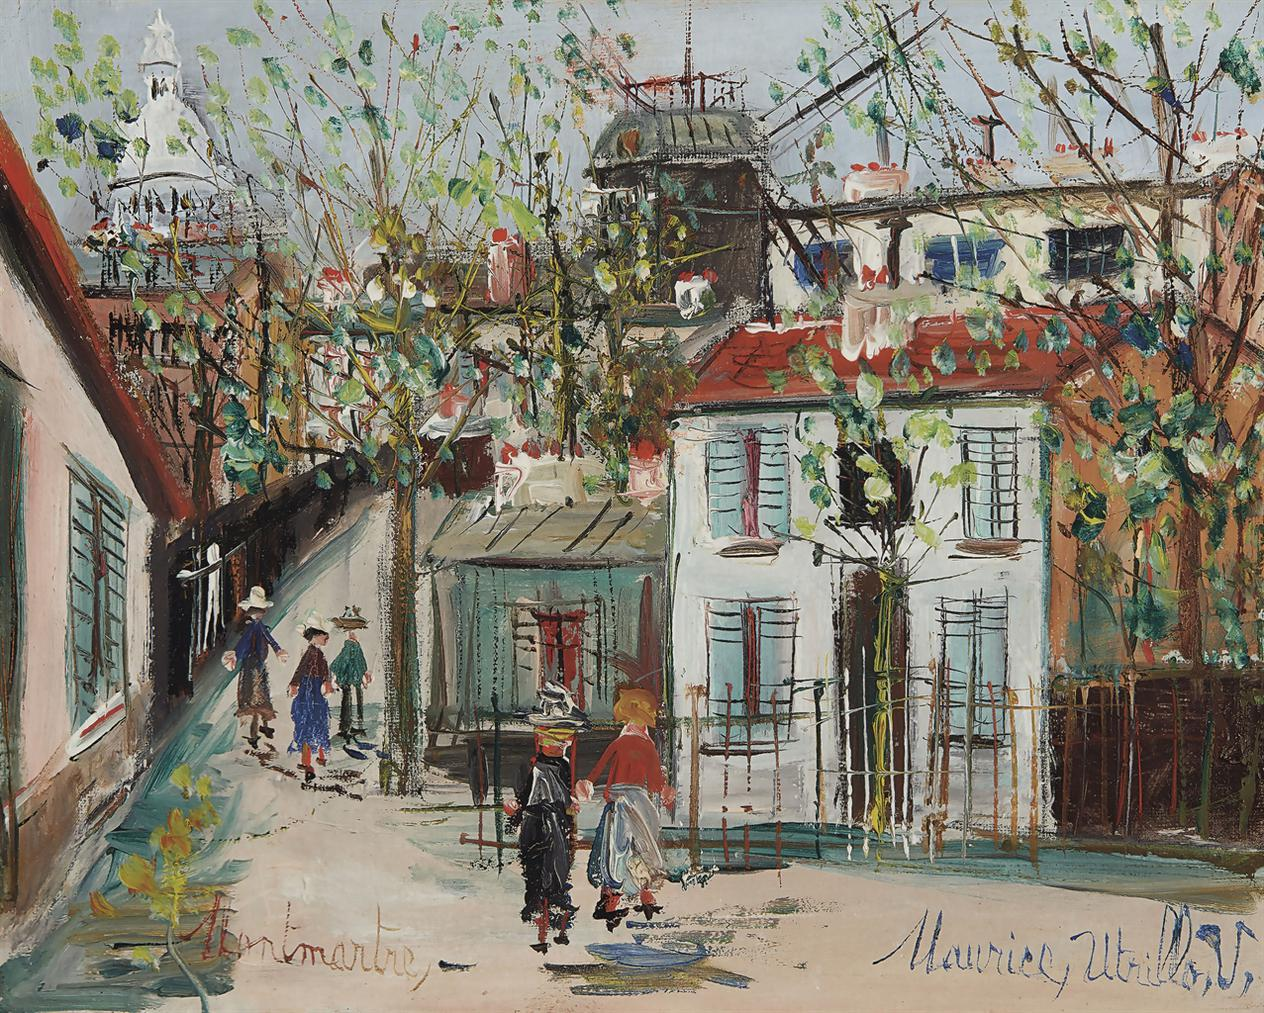 Maurice Utrillo-Maquis A Montmartre-1939